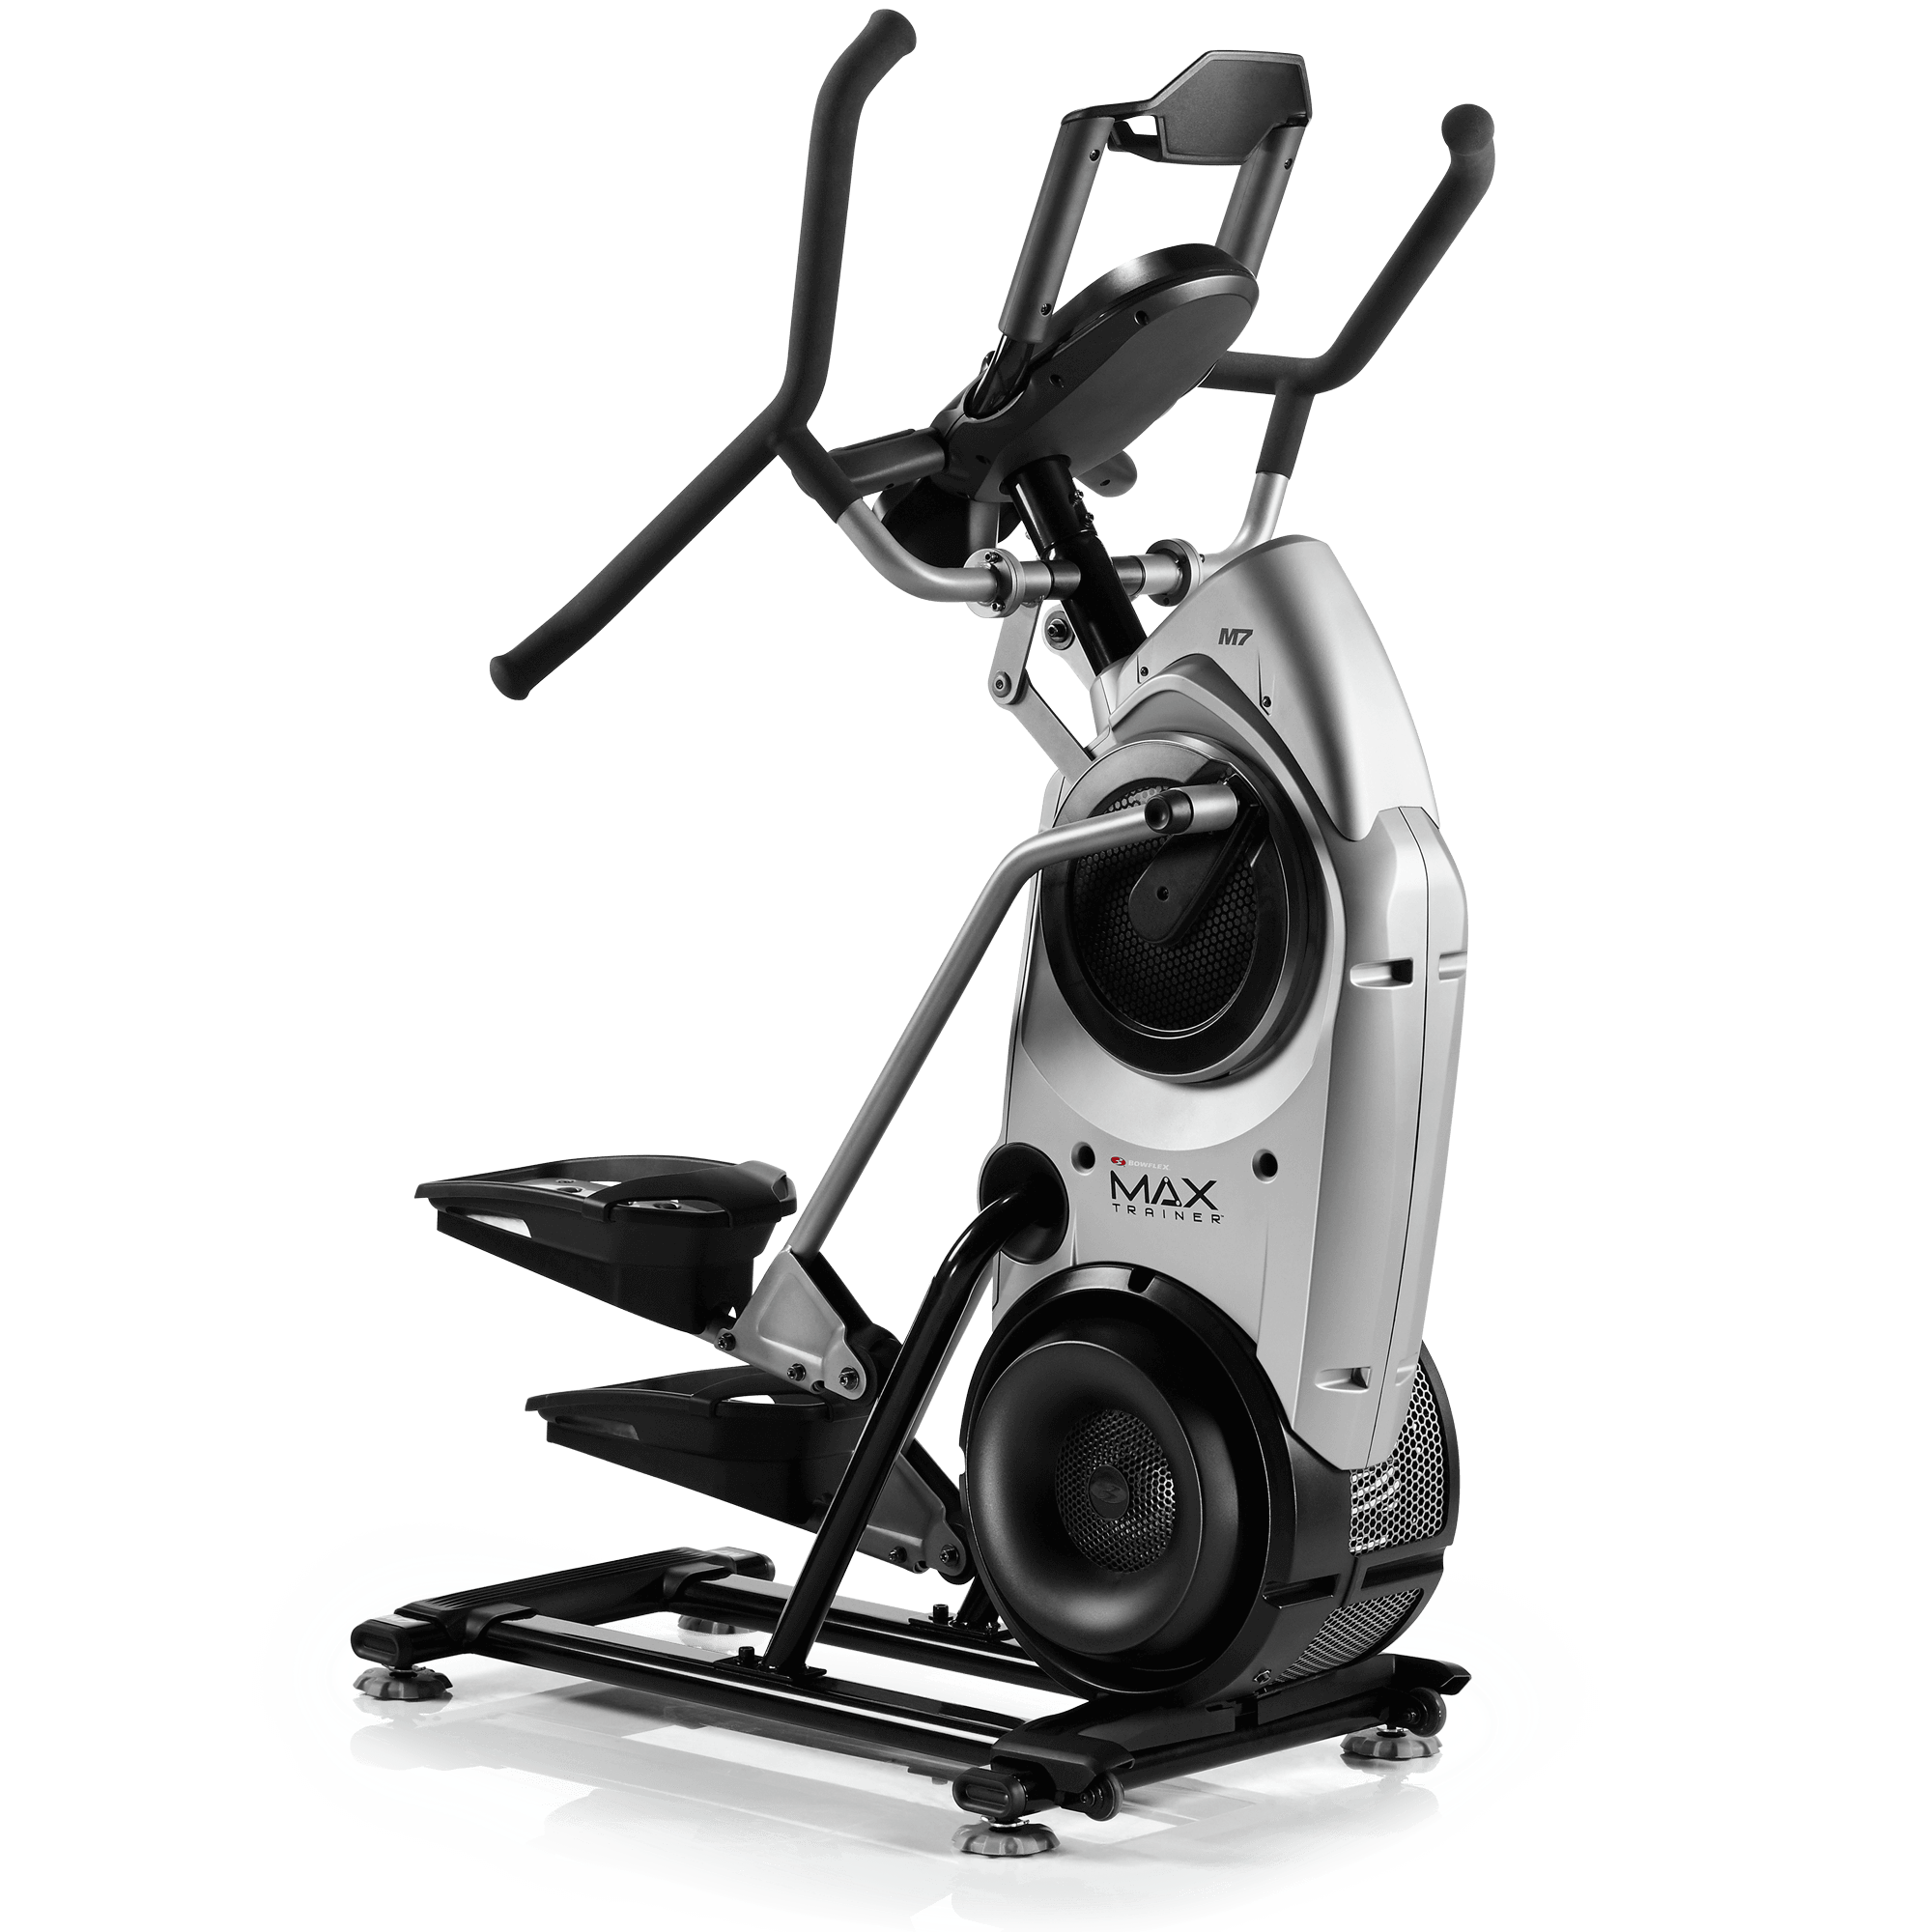 blog before videojet after mat training mats installation sports covered stairmaster technolgies me premium assembly technologies in transmotion spri gauntlet near delivery inc wood relocation il dale art for elliptical